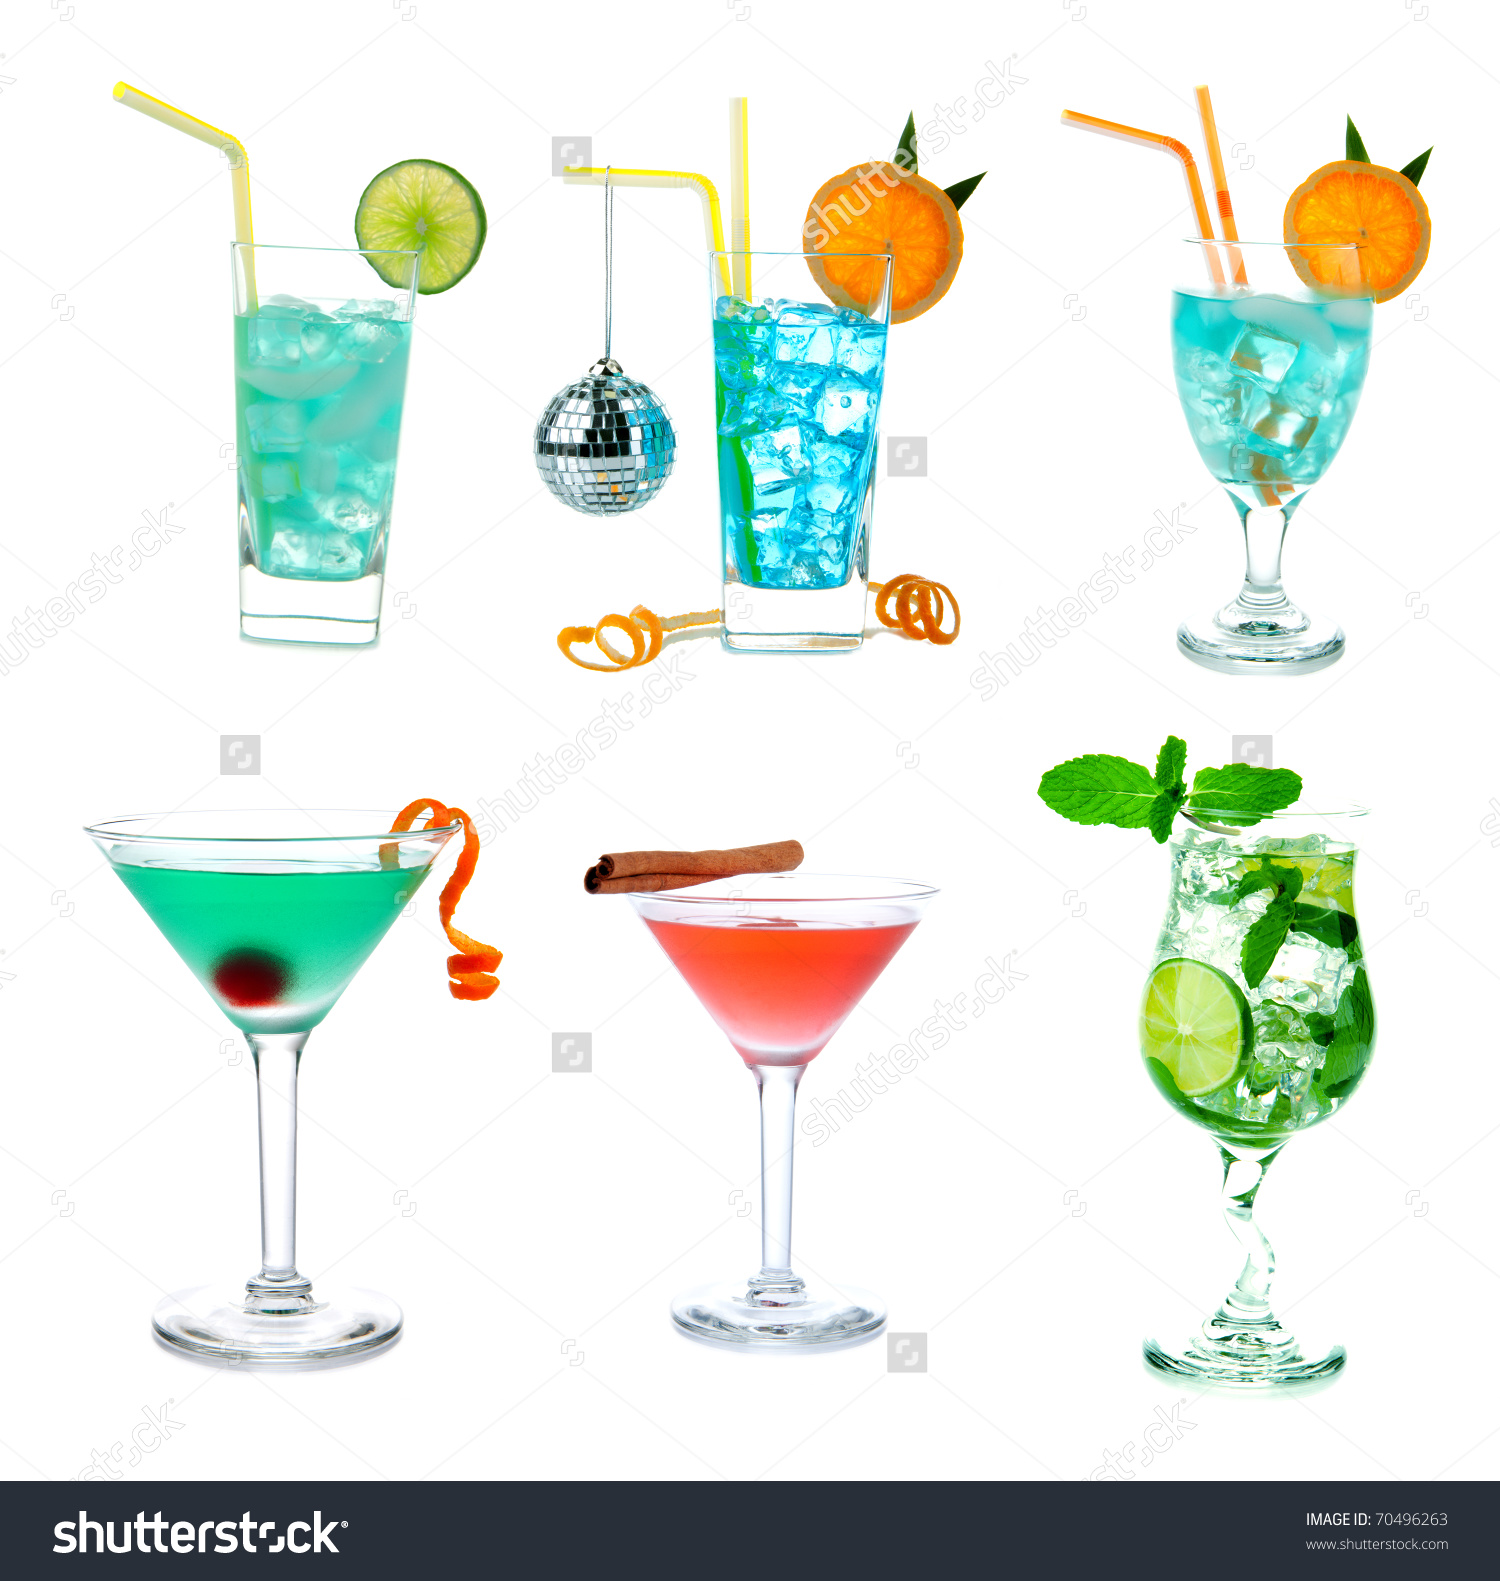 cocktail collage clipart #10